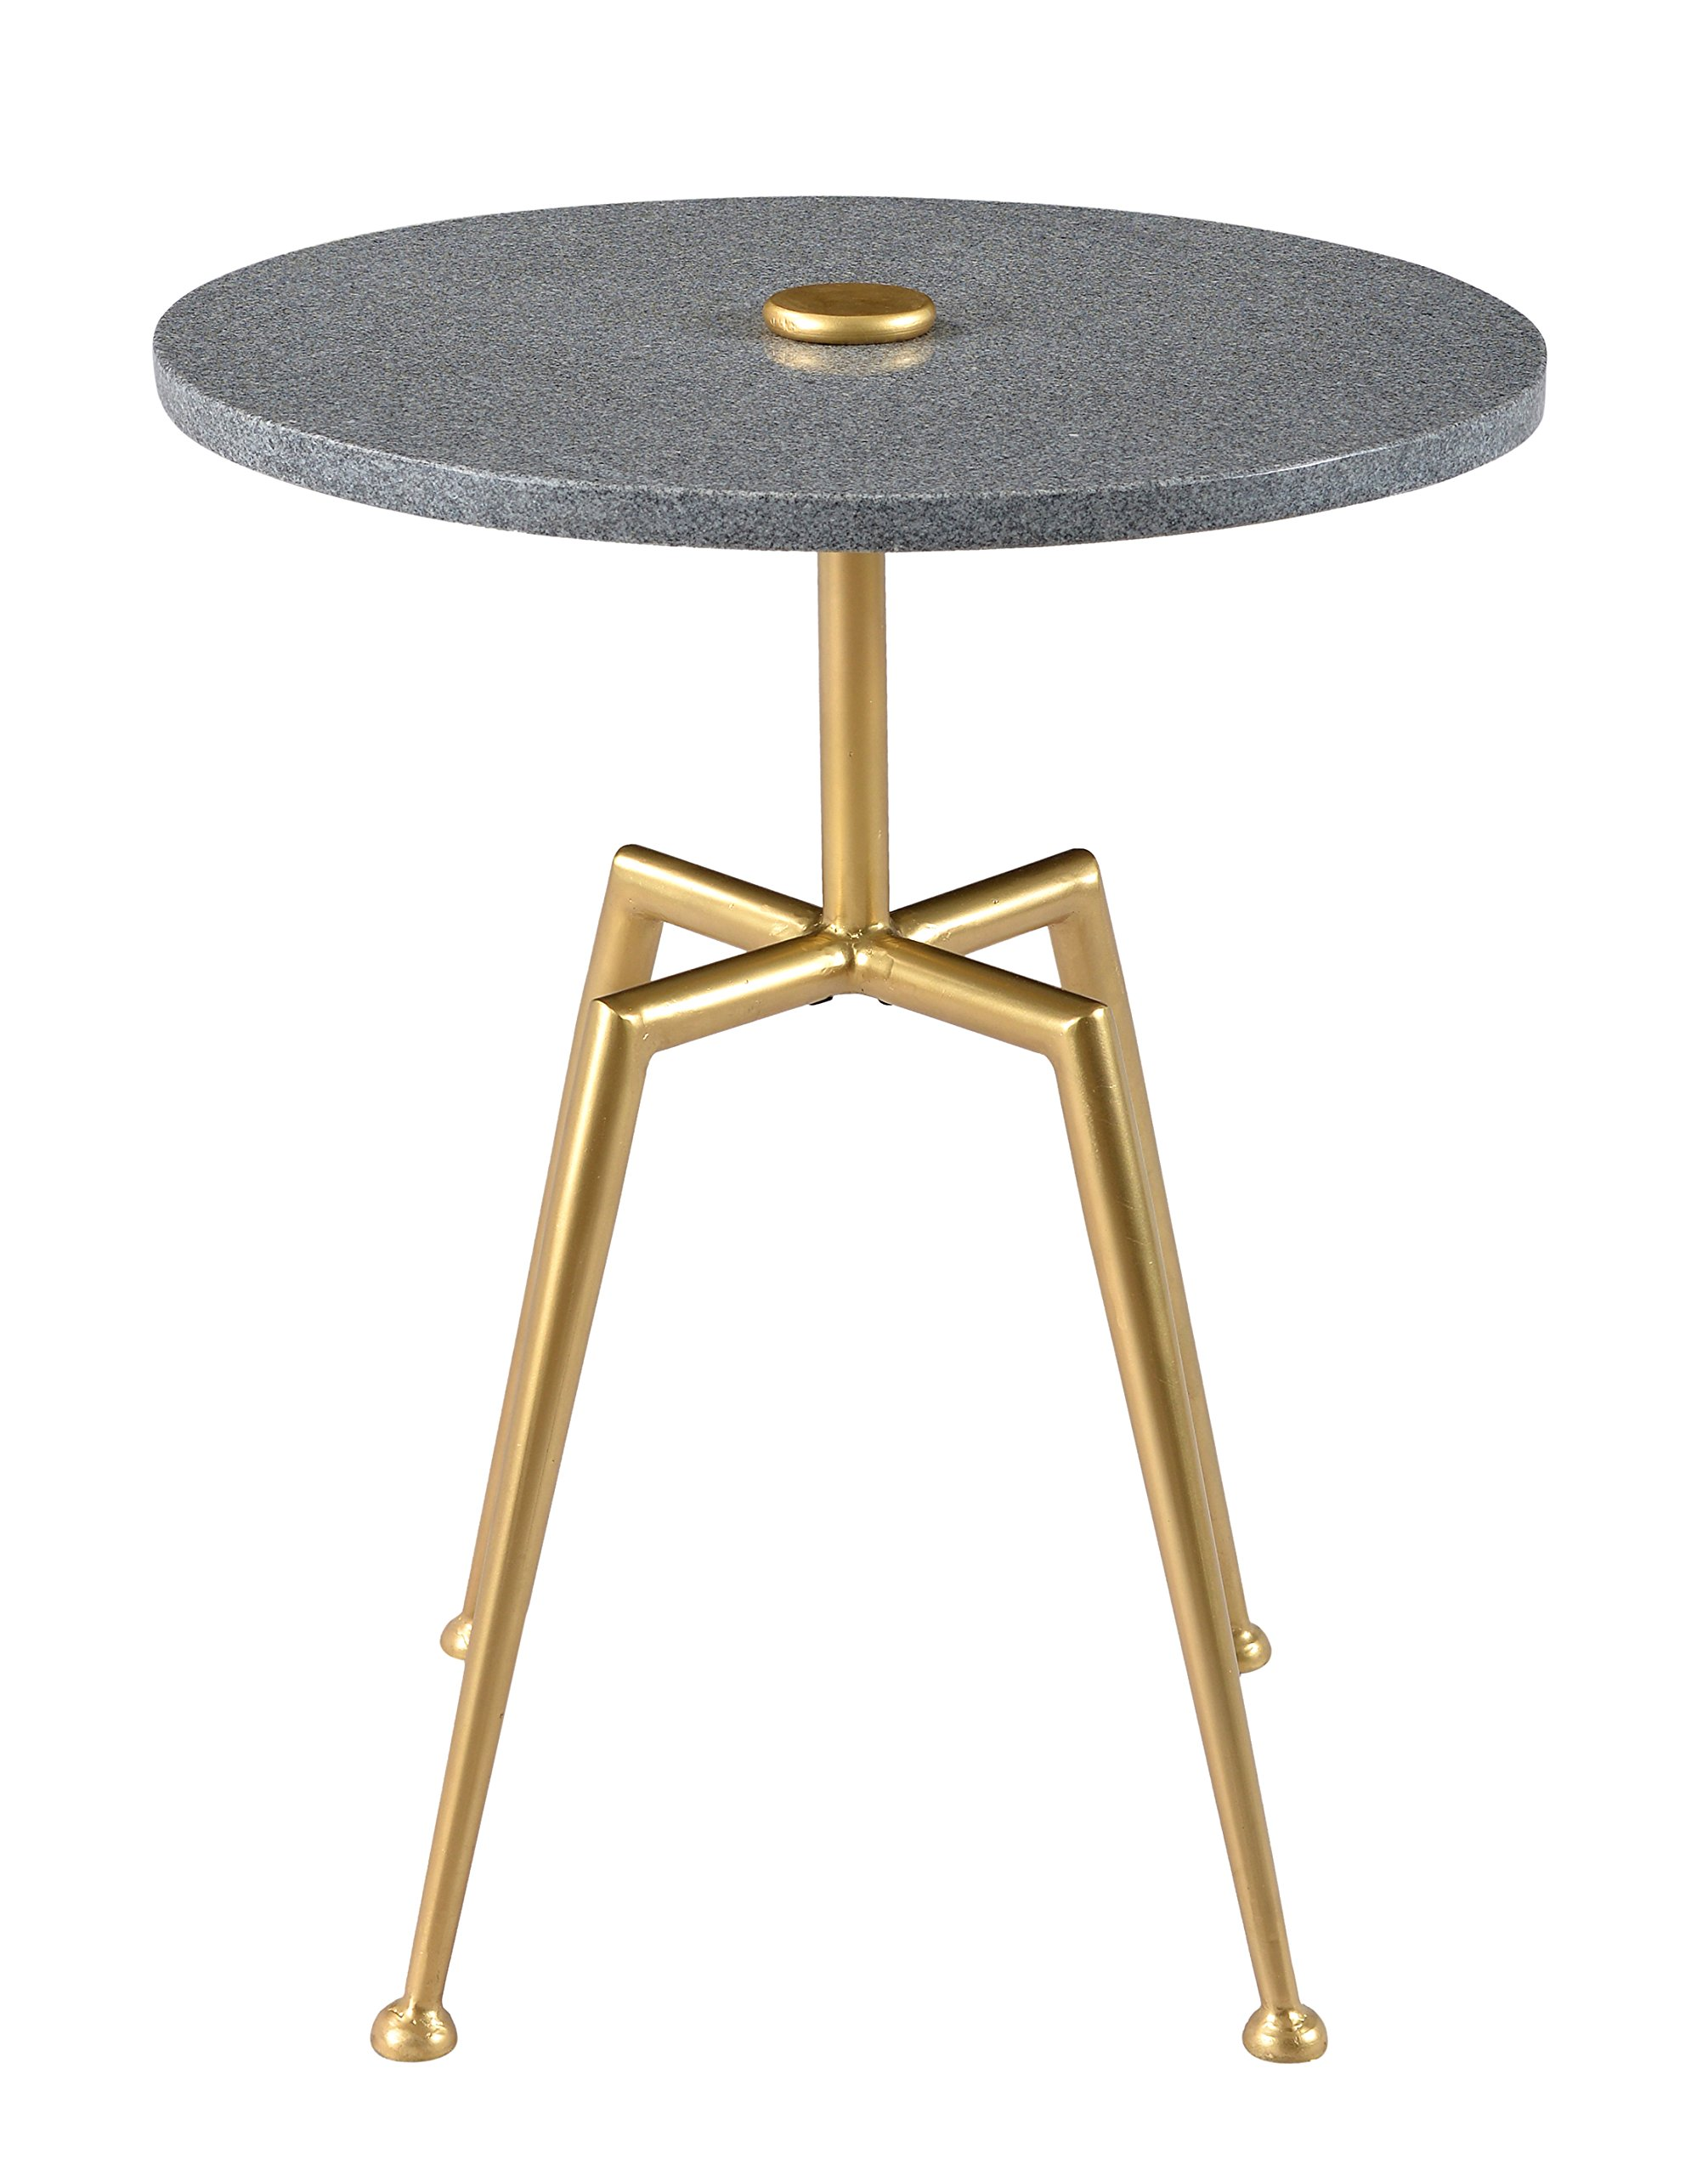 Treasure Trove Table, Silver/Gold - Silver/Gold Marble/Metal Modern Style - living-room-furniture, living-room, console-tables - 81V8tyie4nL -